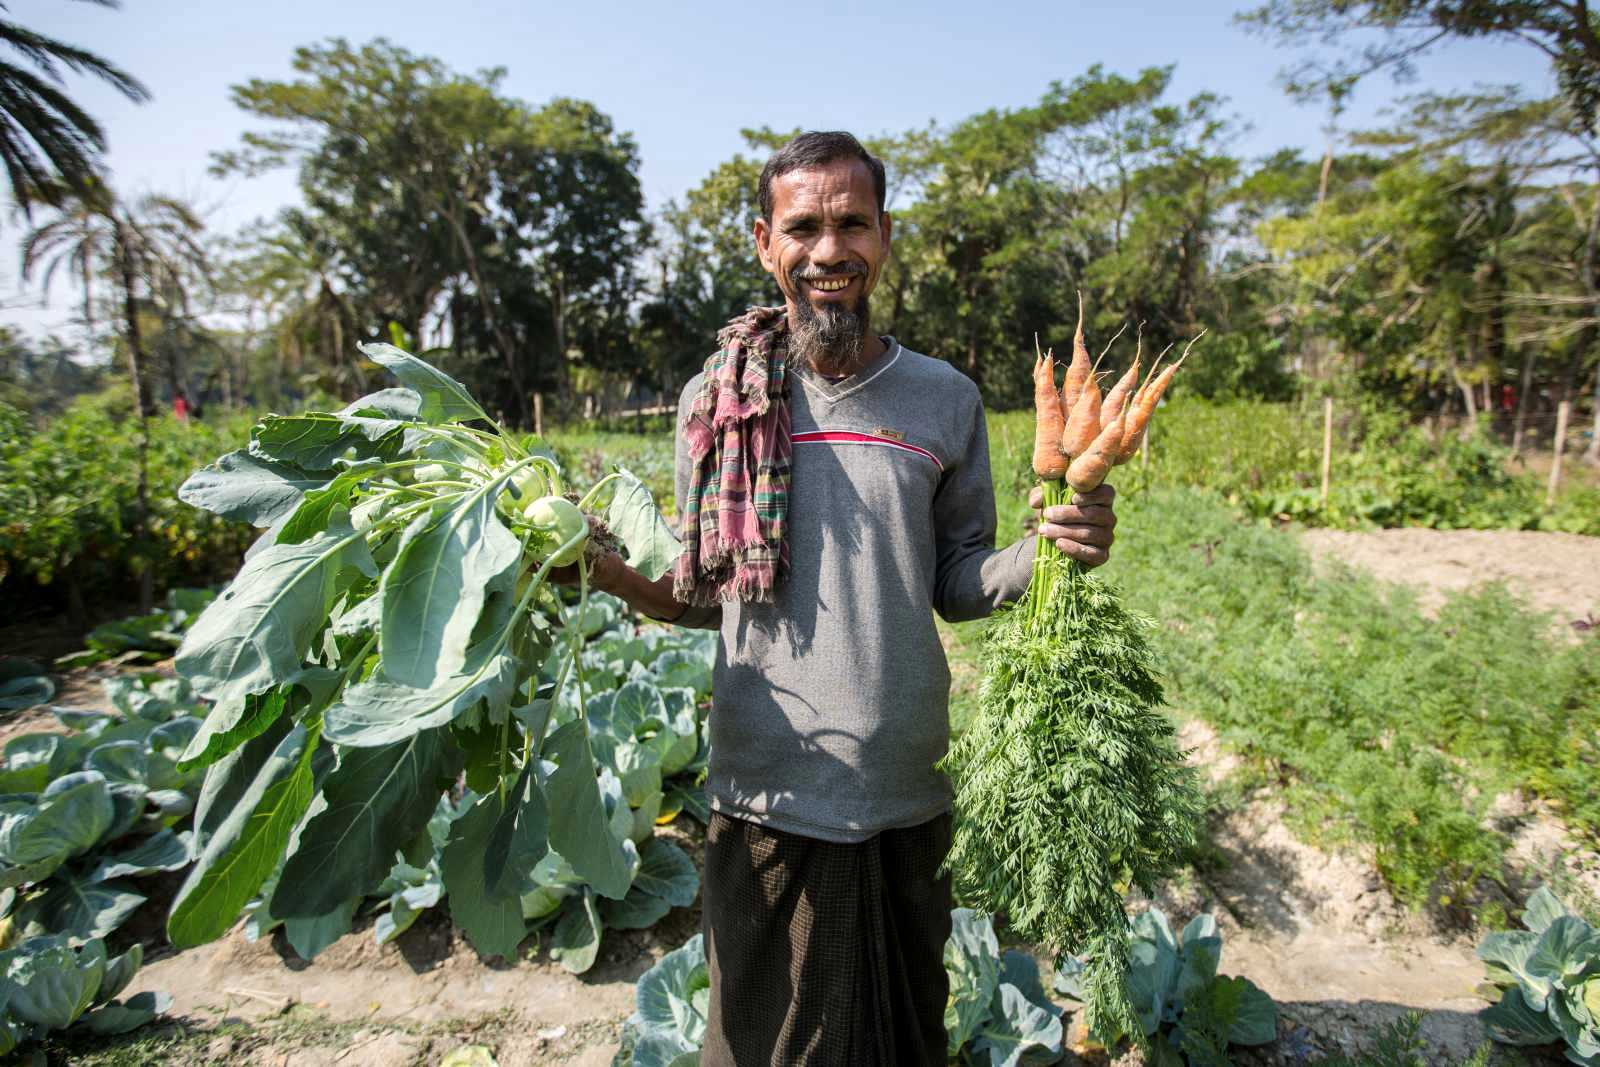 Picture: Participating farmer in the project: The Salt Solution- Bangladesh